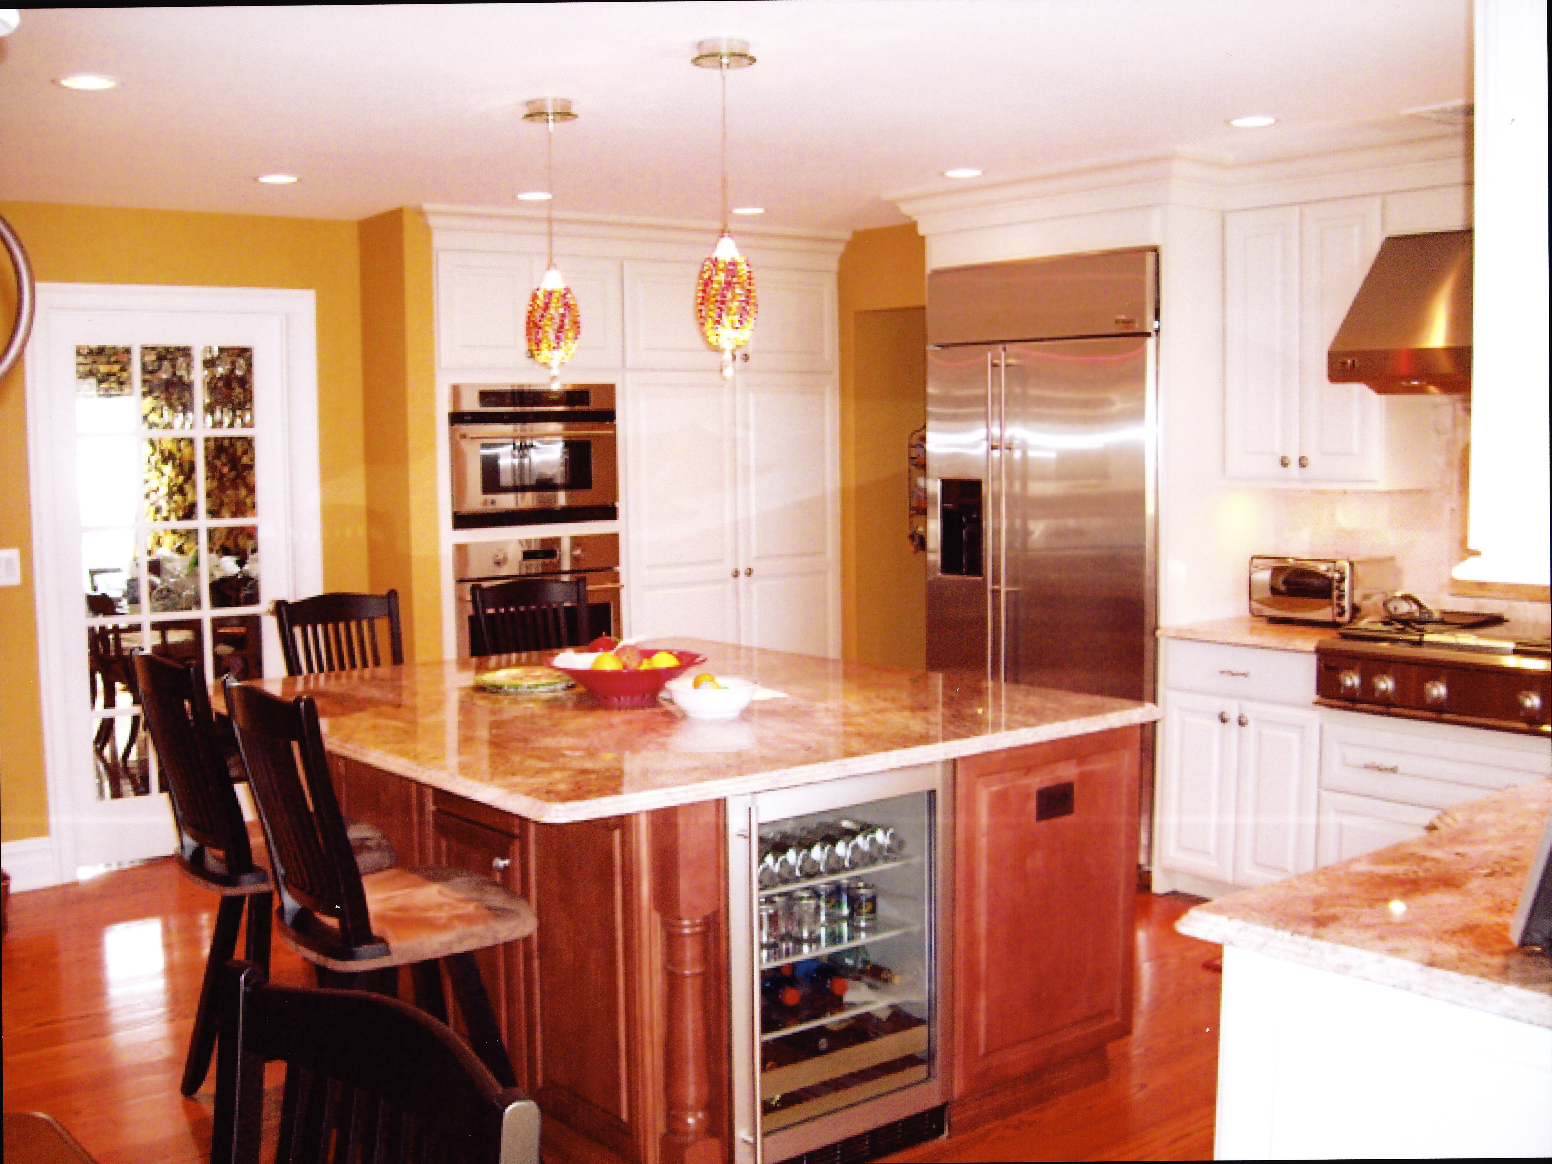 Kitchen-Island-Joe-Shadel-General-Contracting._edited.jpg